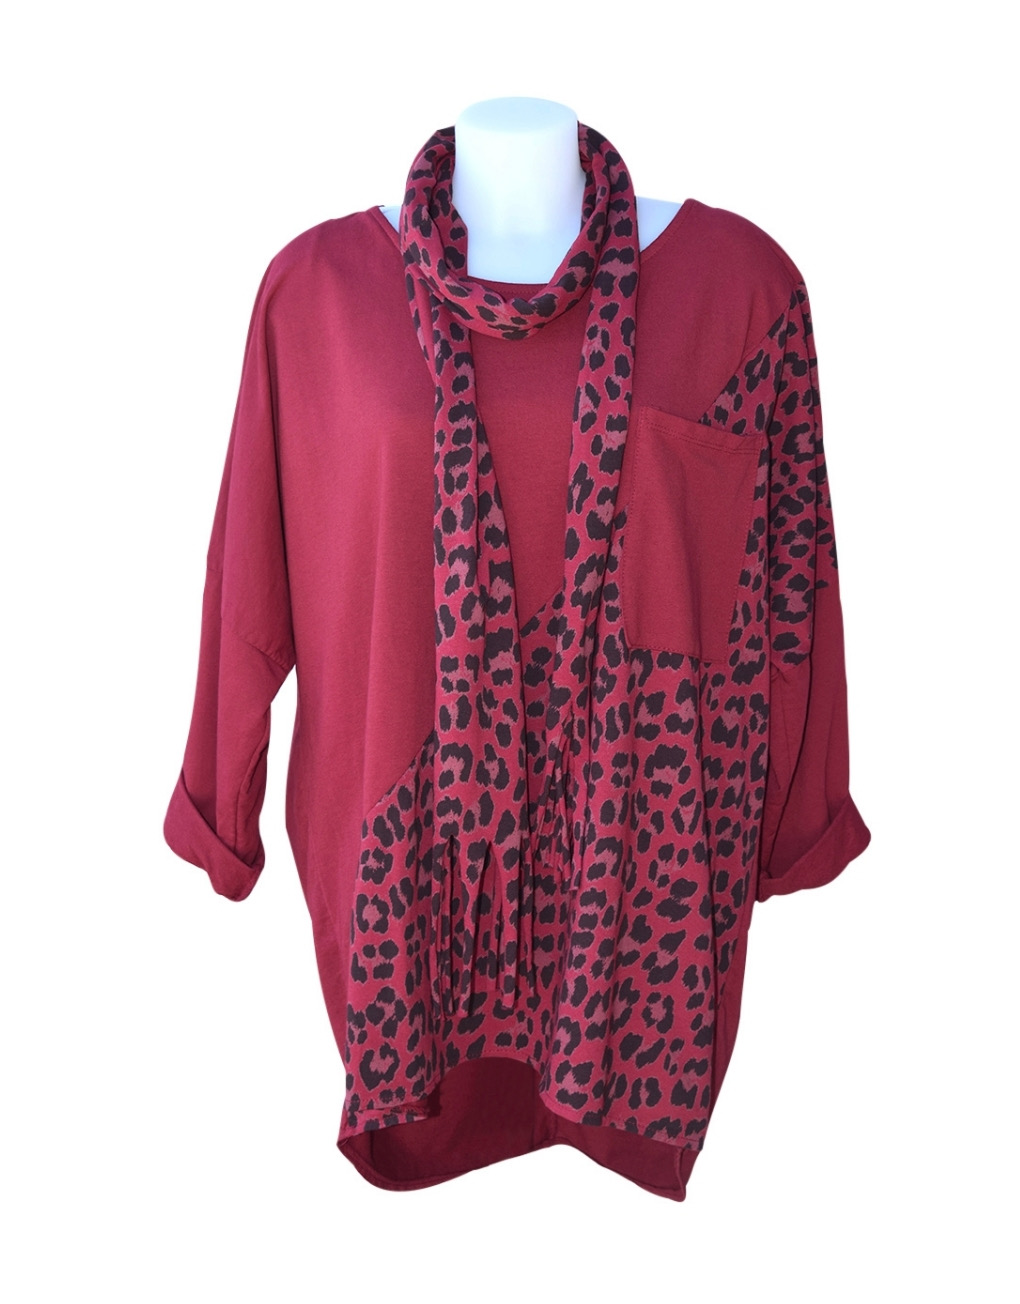 Fashion Fix Italian Leopard Print Cotton Top With Scarf Wine